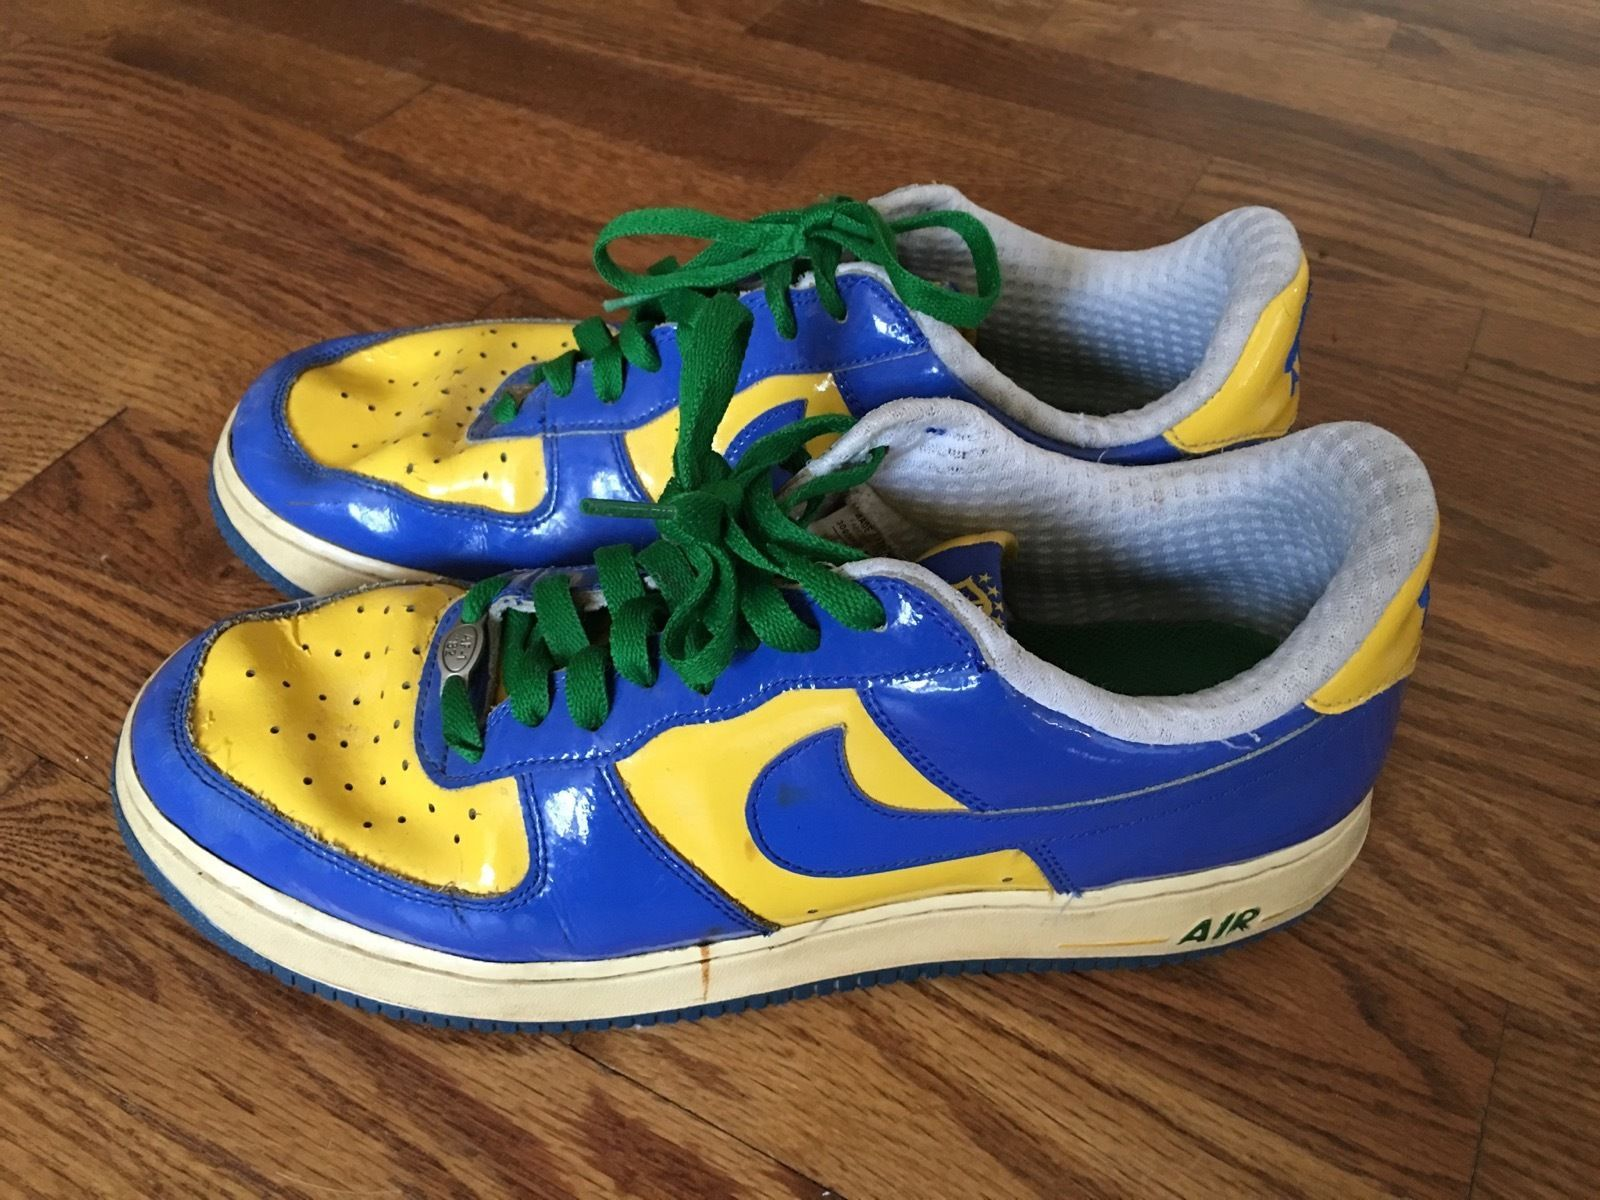 finest selection 45e88 65d2b 2006 Mens Nike Air Force 1 Brasil World Cup Tennis Shoes Blue Yellow Sz US  10.5